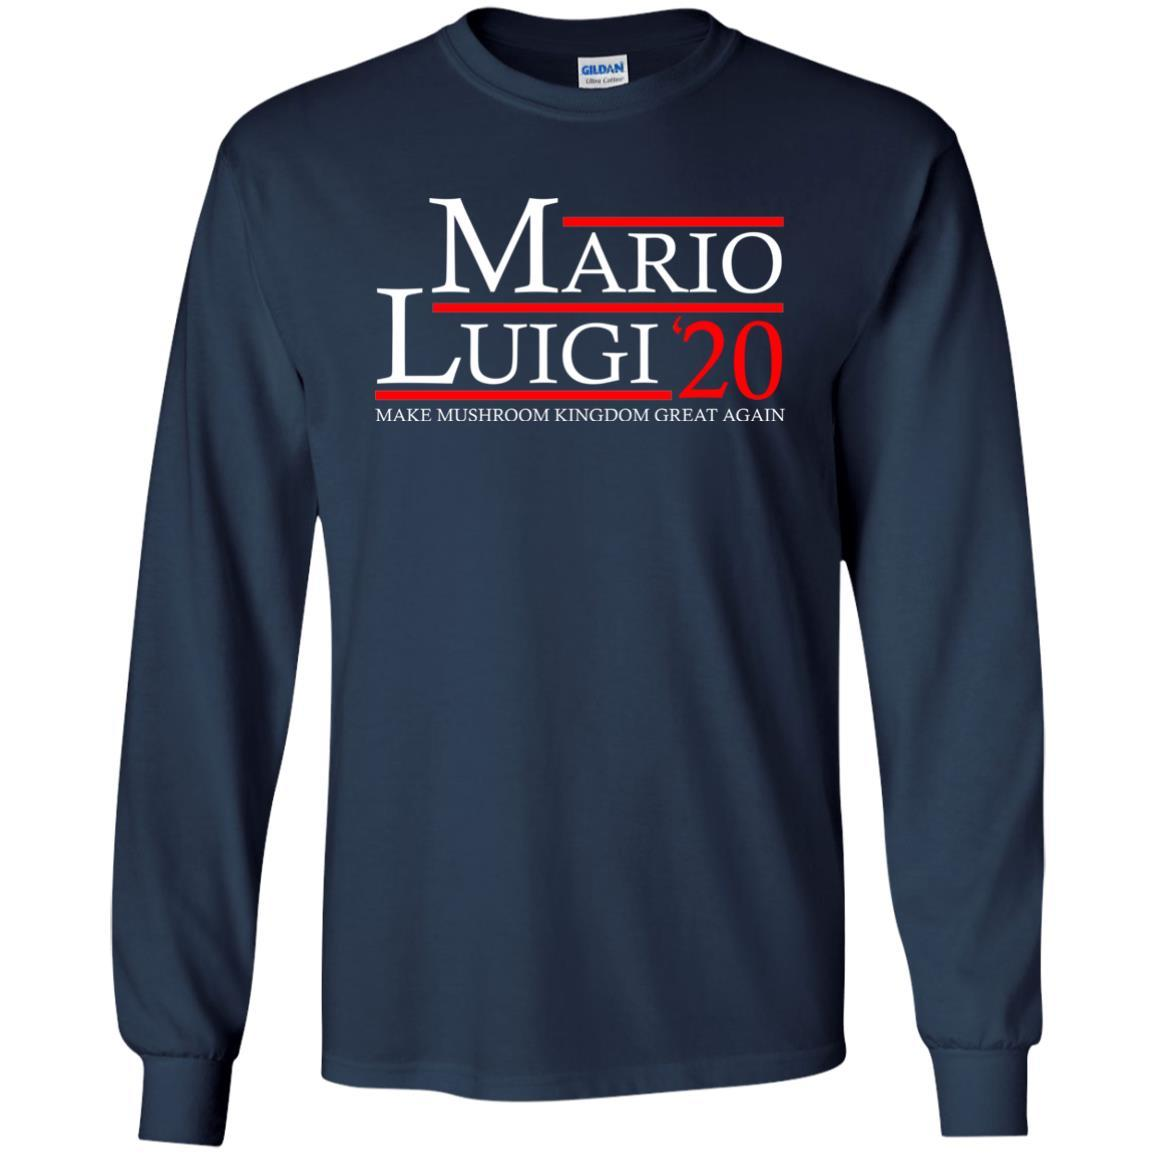 T-Shirts - Mario Luigi 20 Long Sleeve